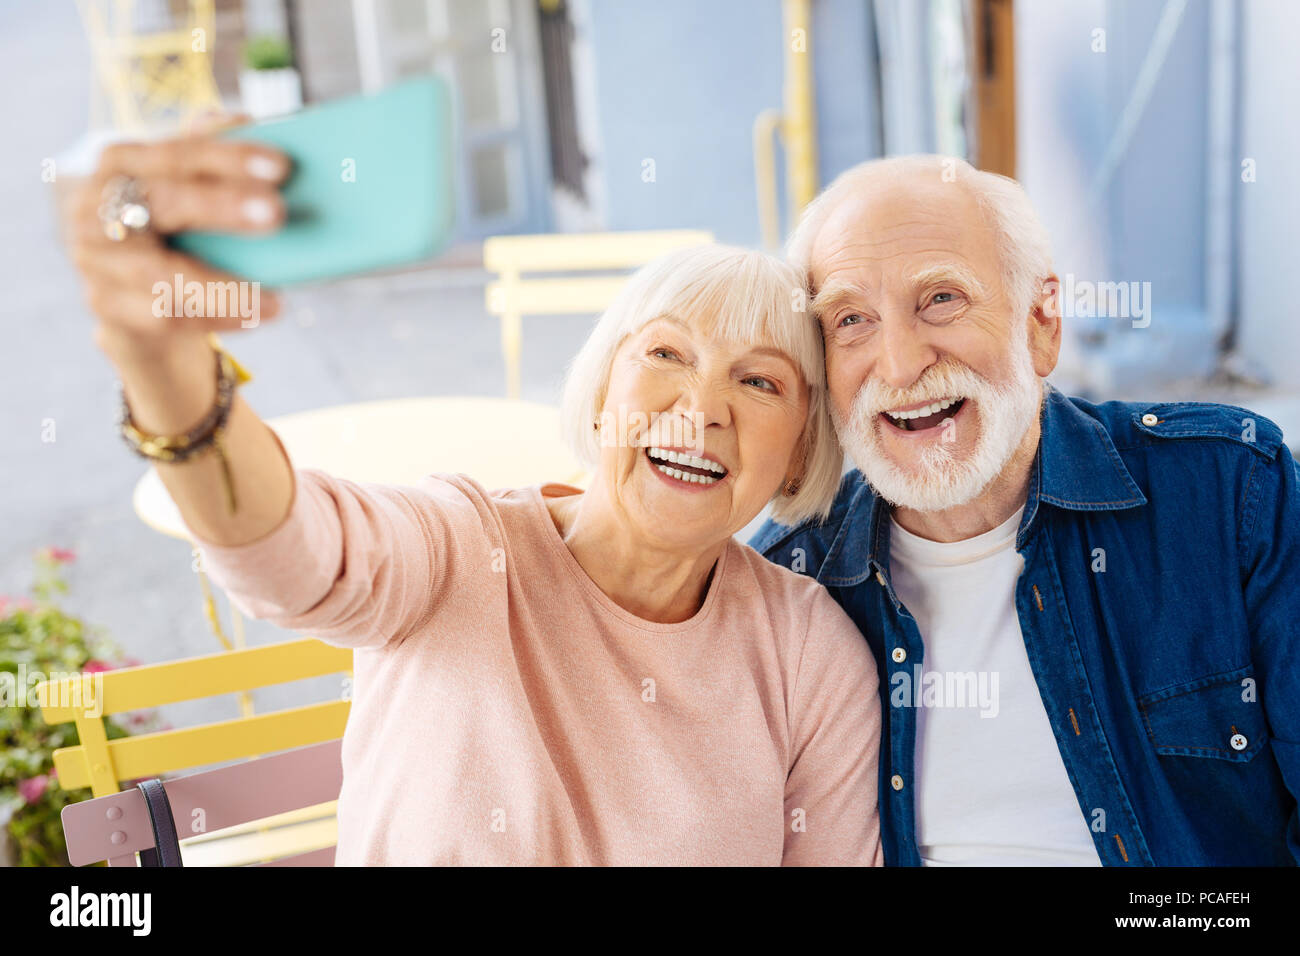 Positive senior couple taking selfie - Stock Image